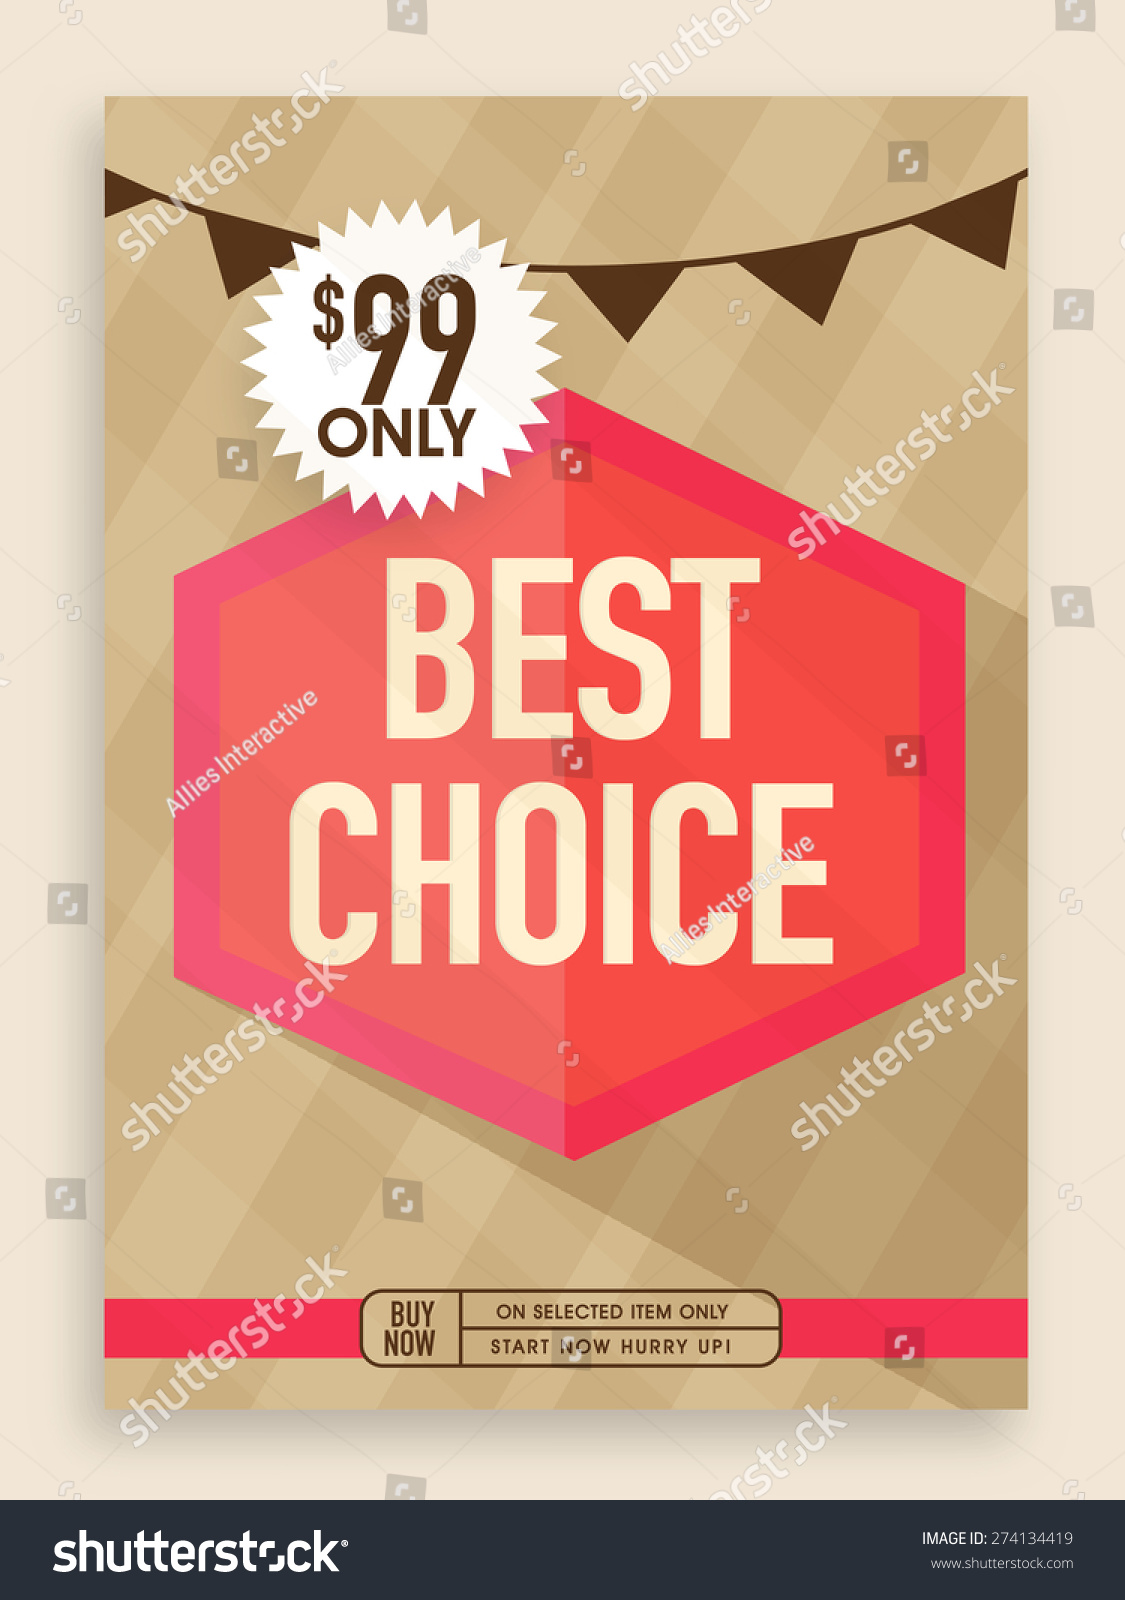 vintage best choice poster banner or flyer design for stock flyer design for preview save to a lightbox